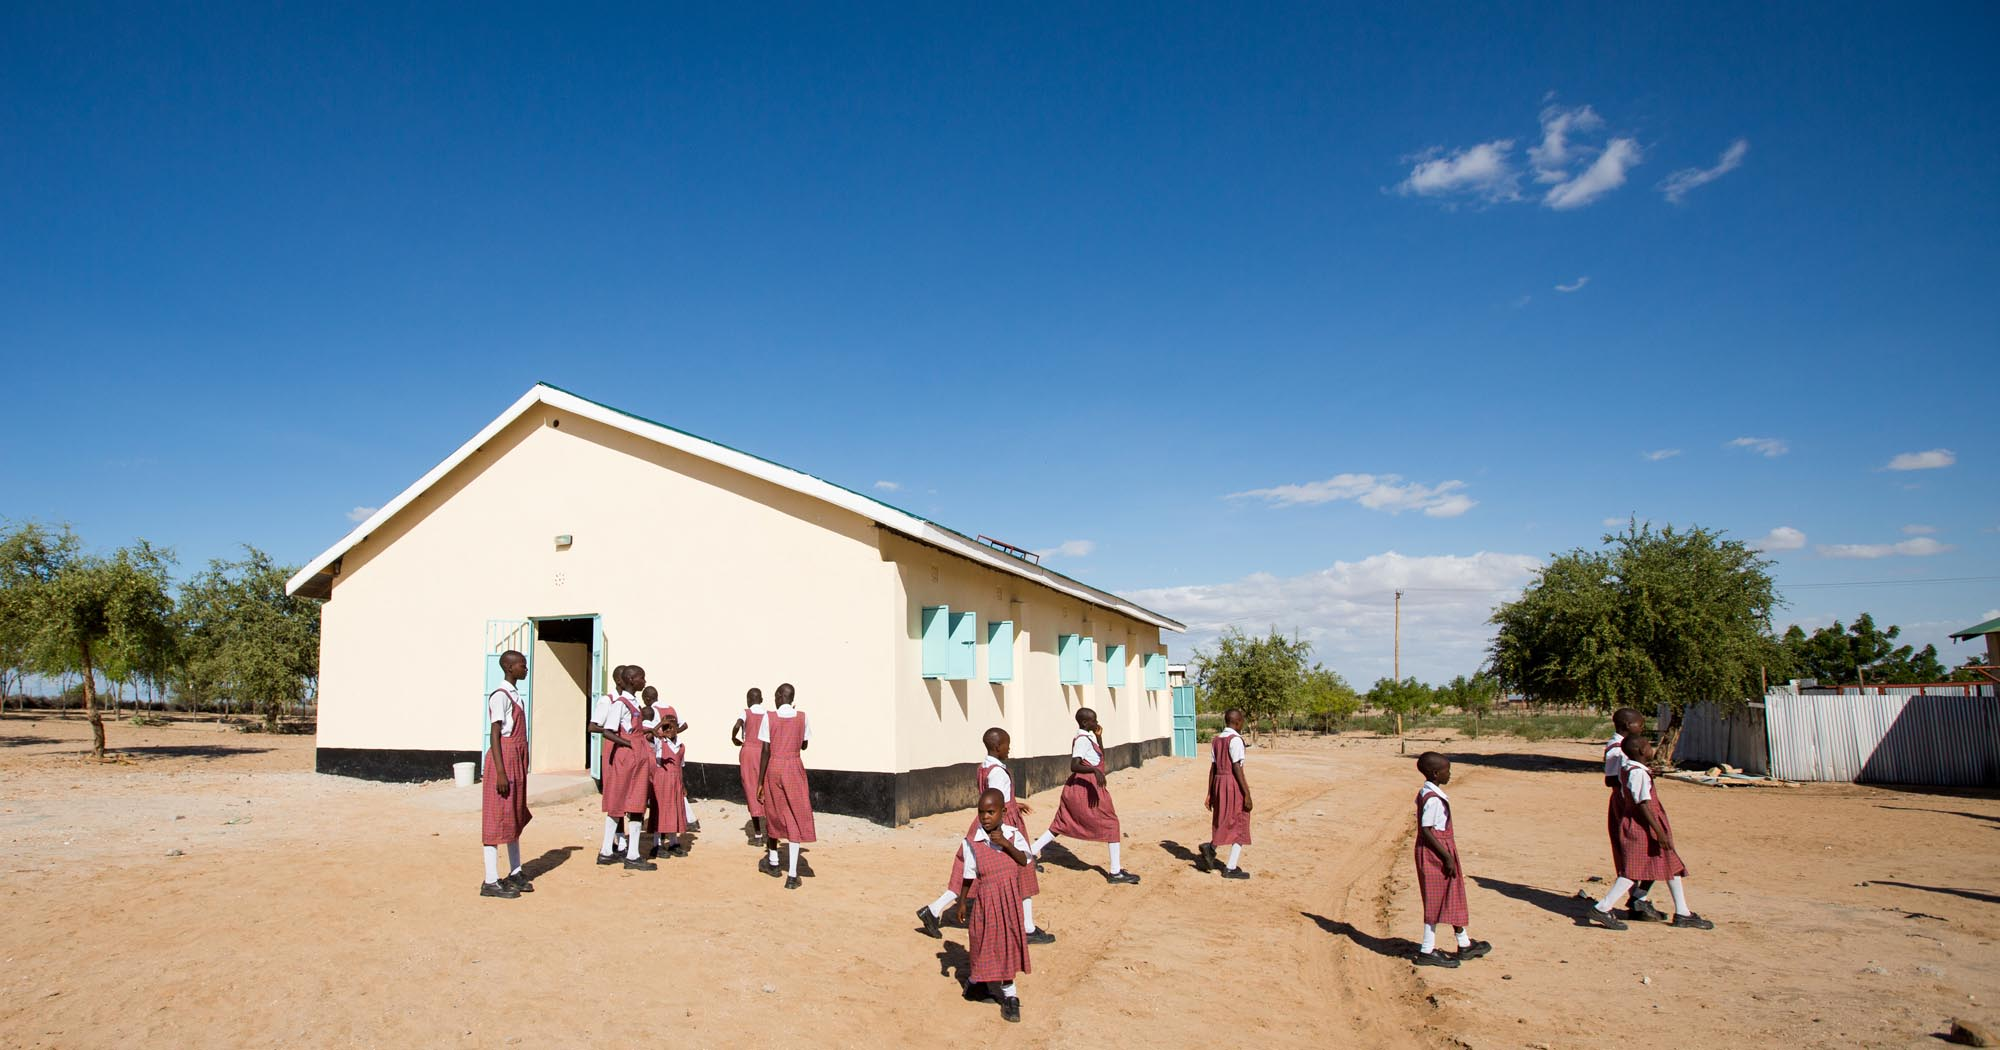 House of Hope orphanage in Kenya